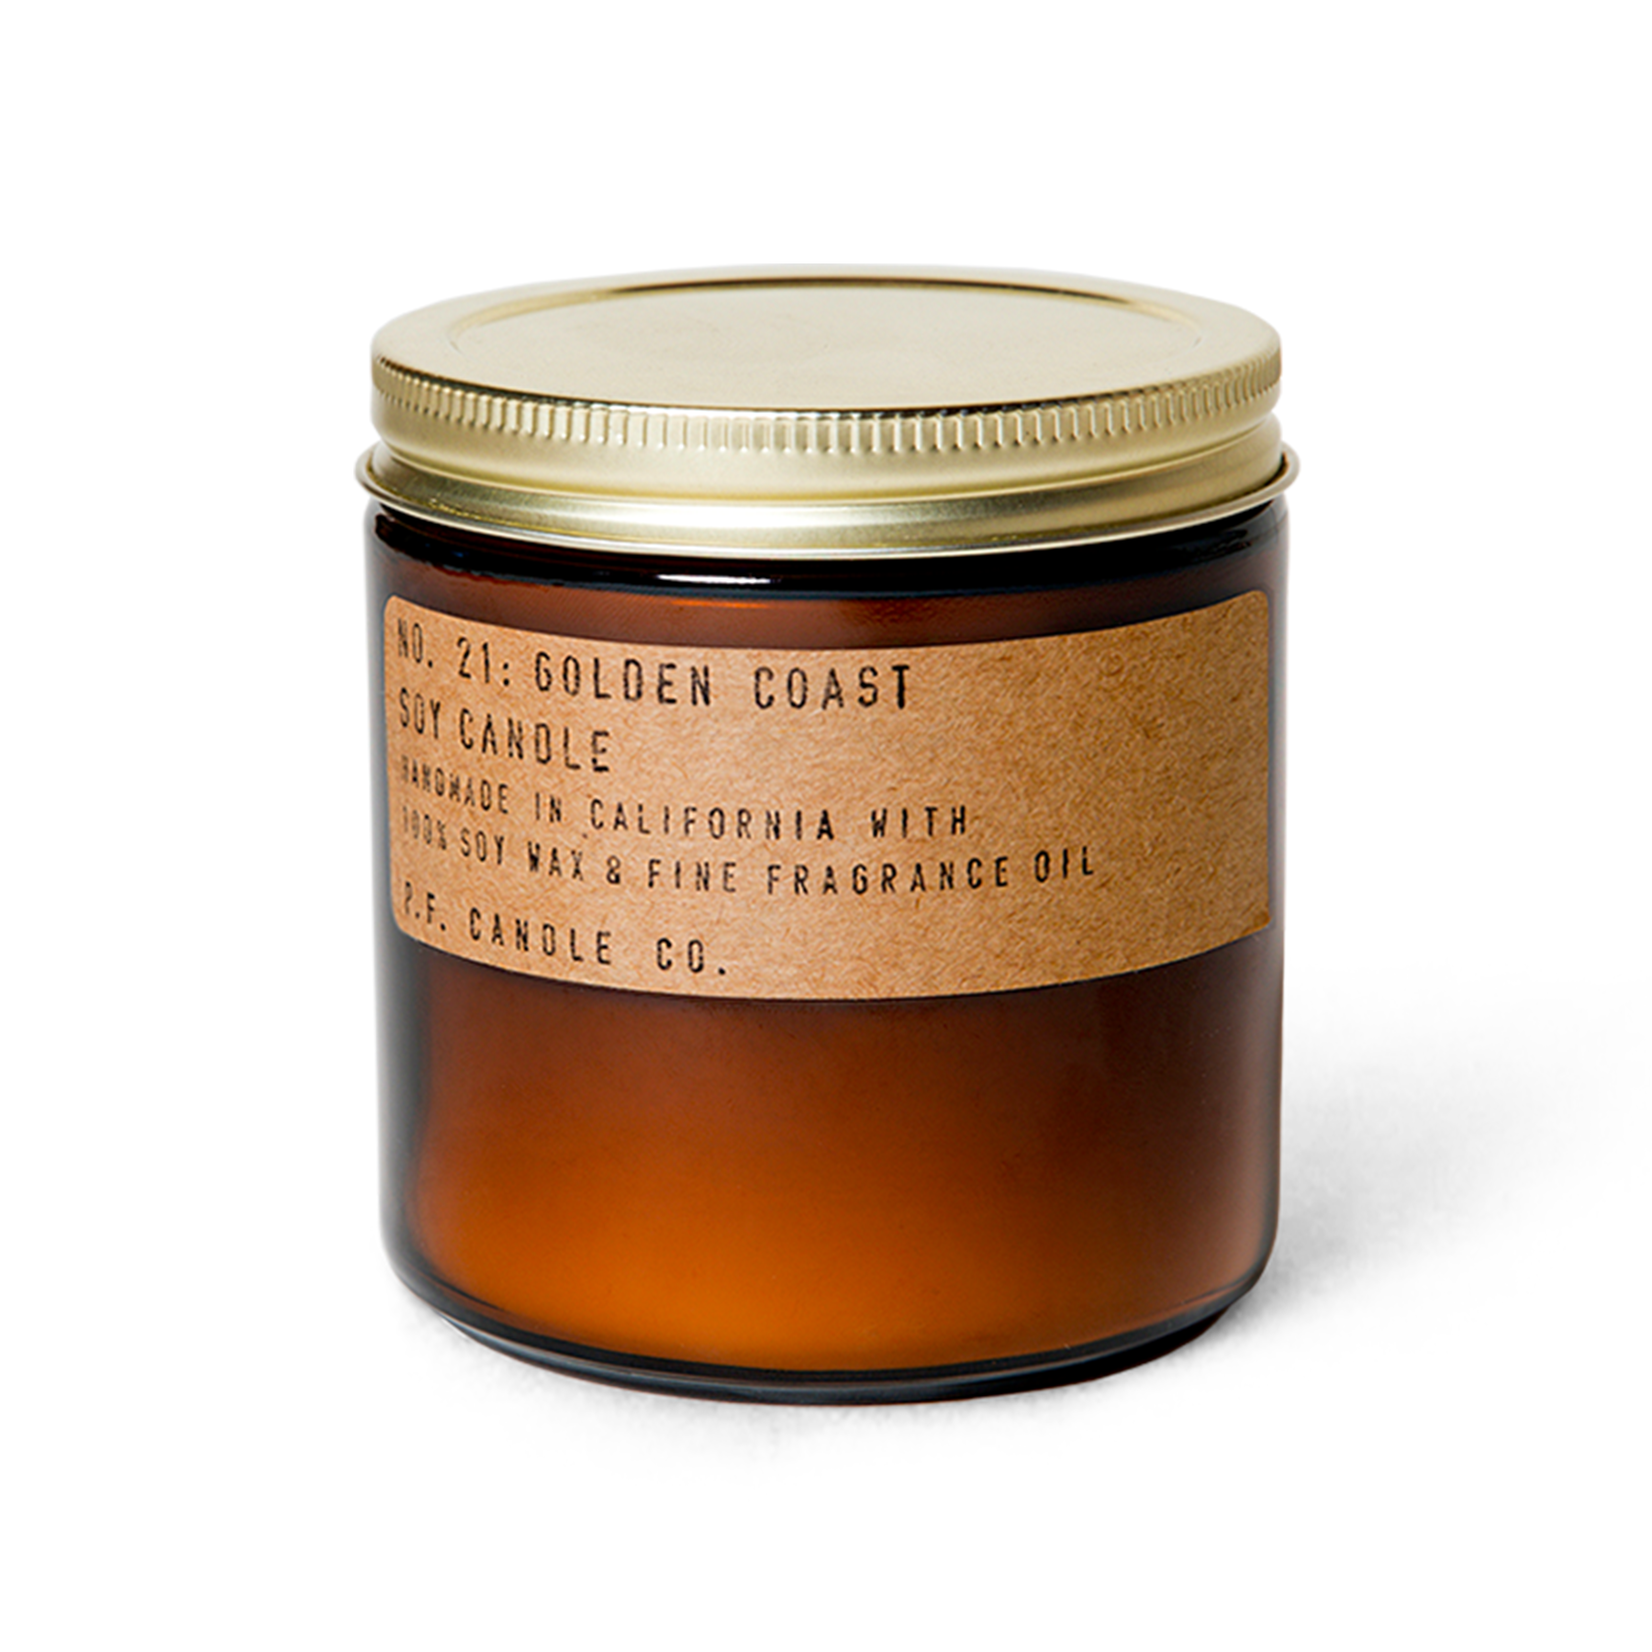 P.F. Candle Co. P.F. Soy Candle 12.5oz GOLDEN COAST